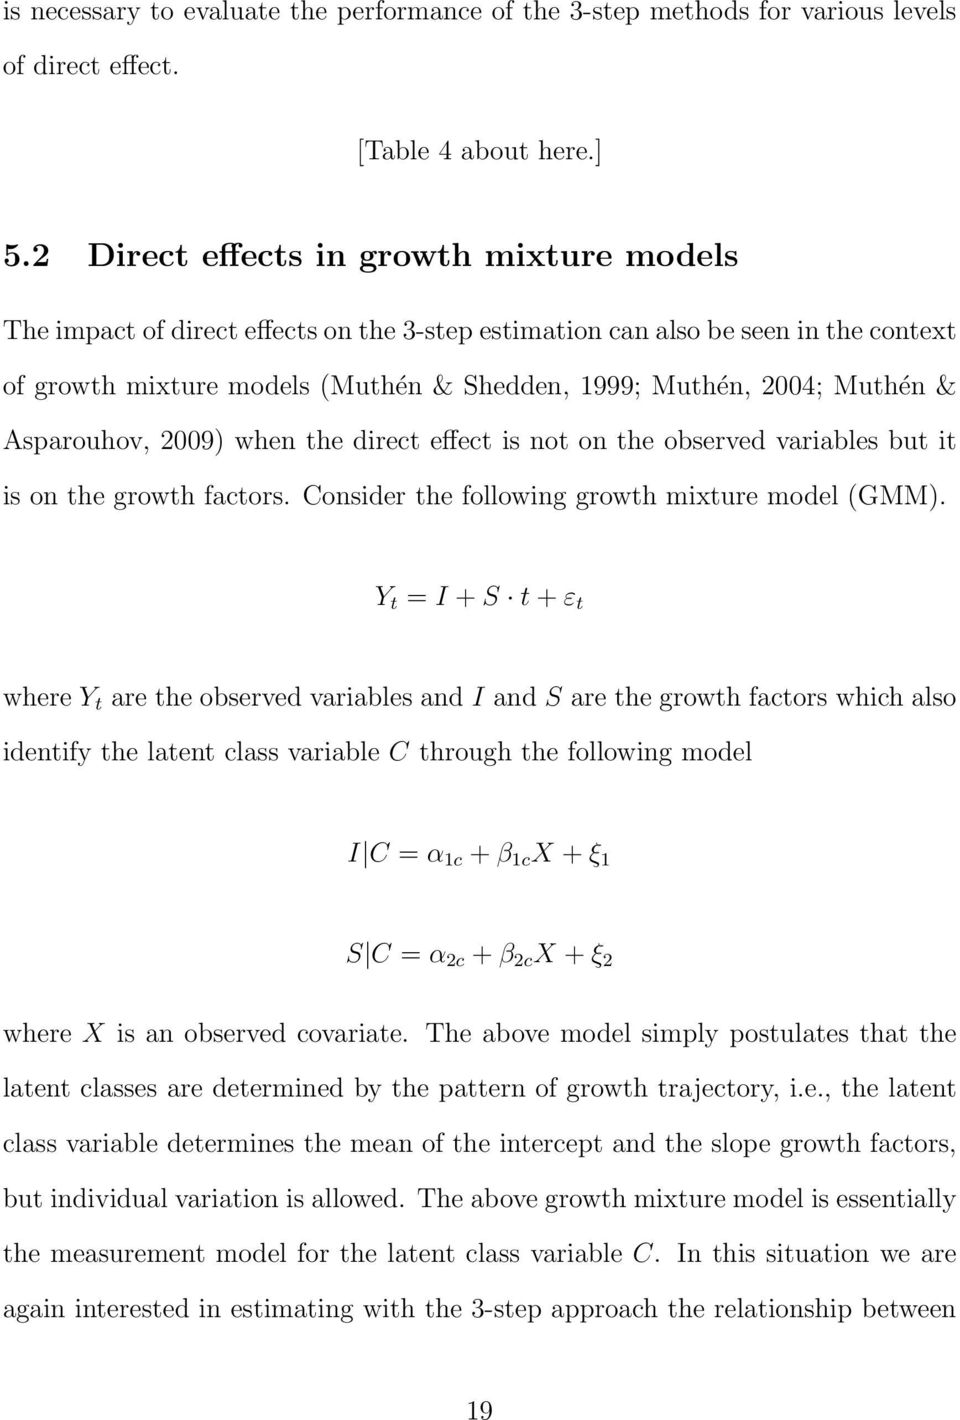 & Asparouhov, 2009) when the direct effect is not on the observed variables but it is on the growth factors. Consider the following growth mixture model (GMM).